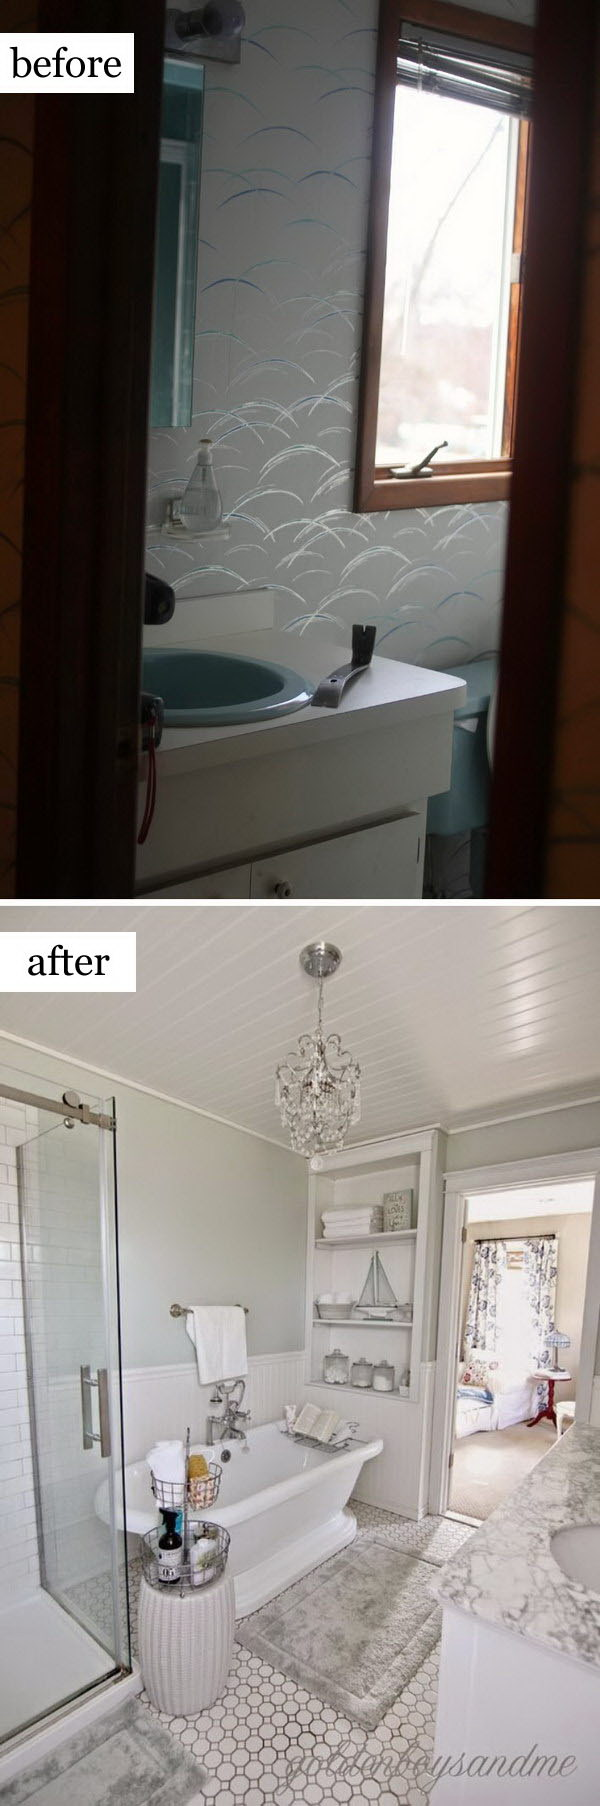 Before And After Makeovers Most Beautiful Bathroom Remodeling Ideas - Bathroom remodel materials list